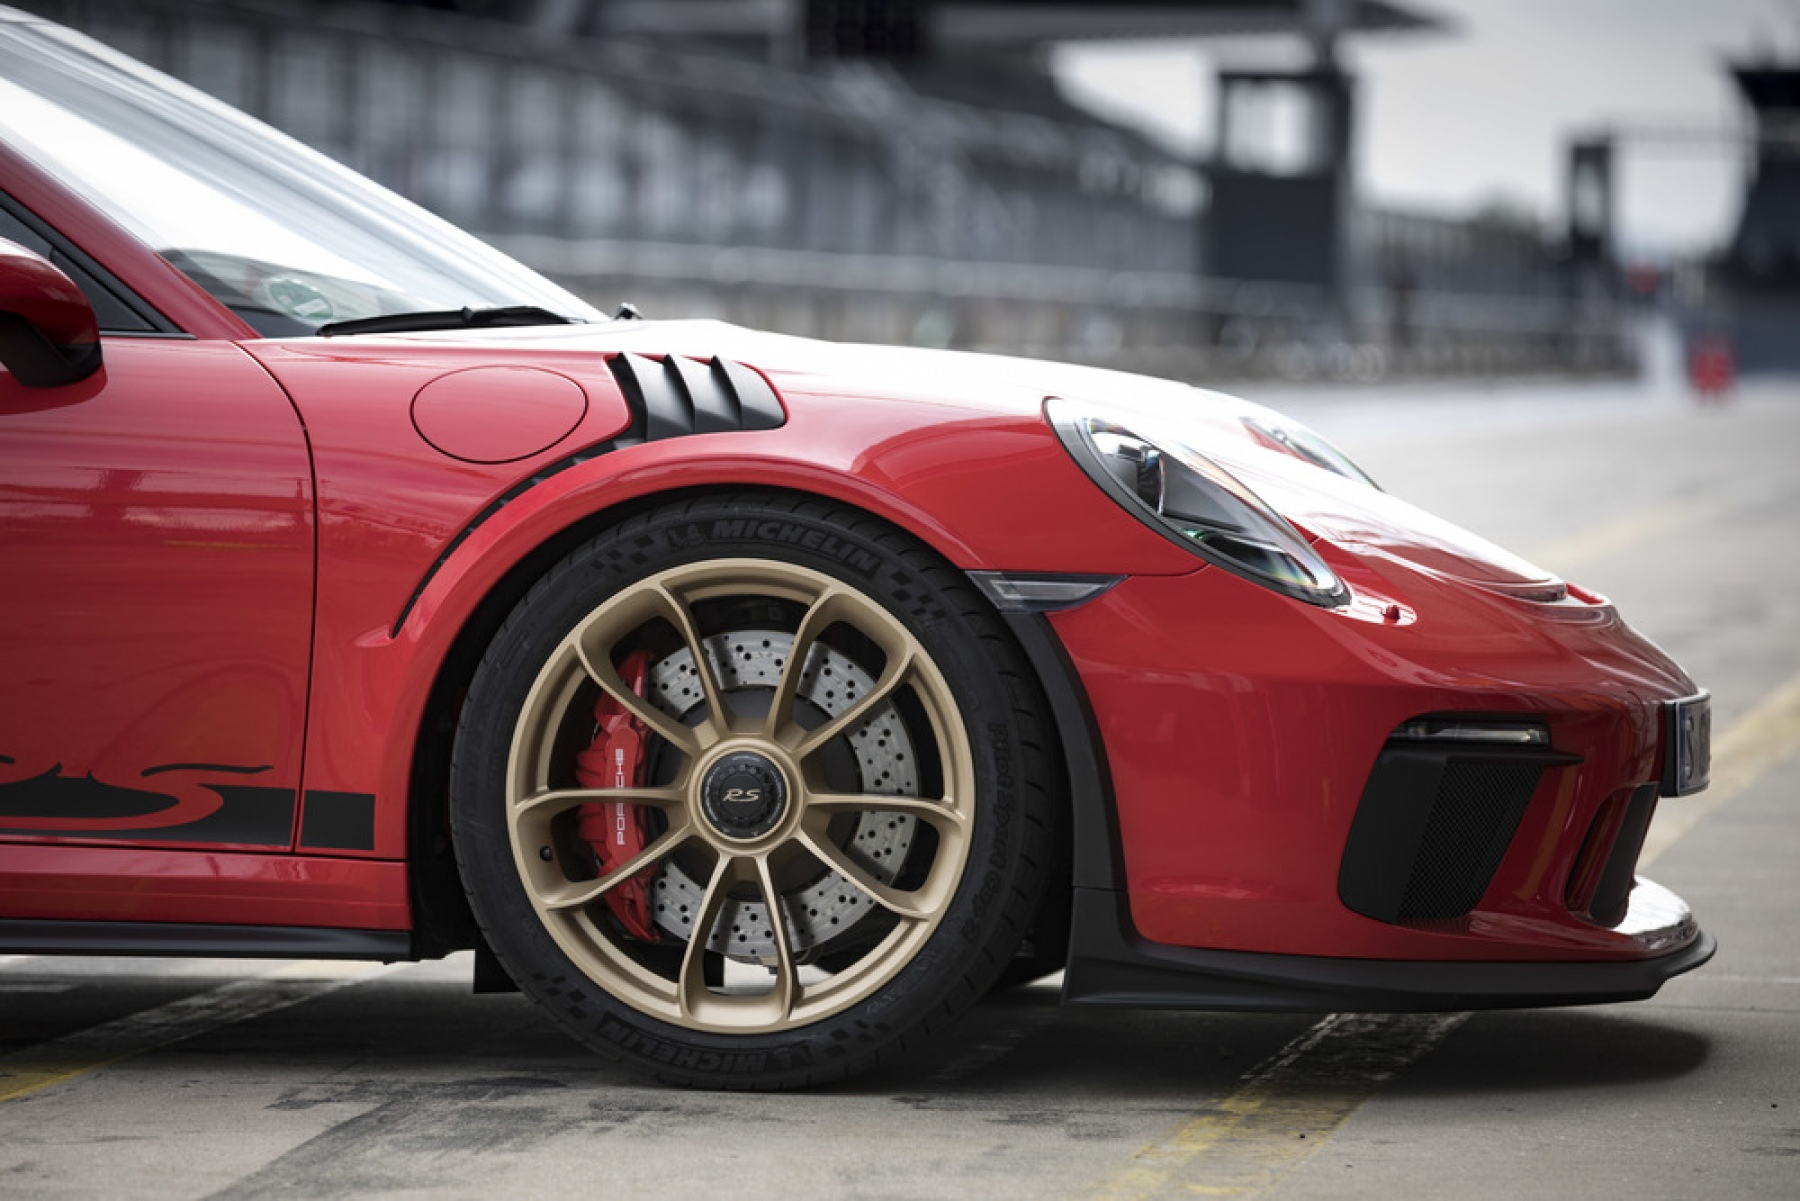 911 Gt3 Rs Guards Red Porsche 911 Gt3 Rs